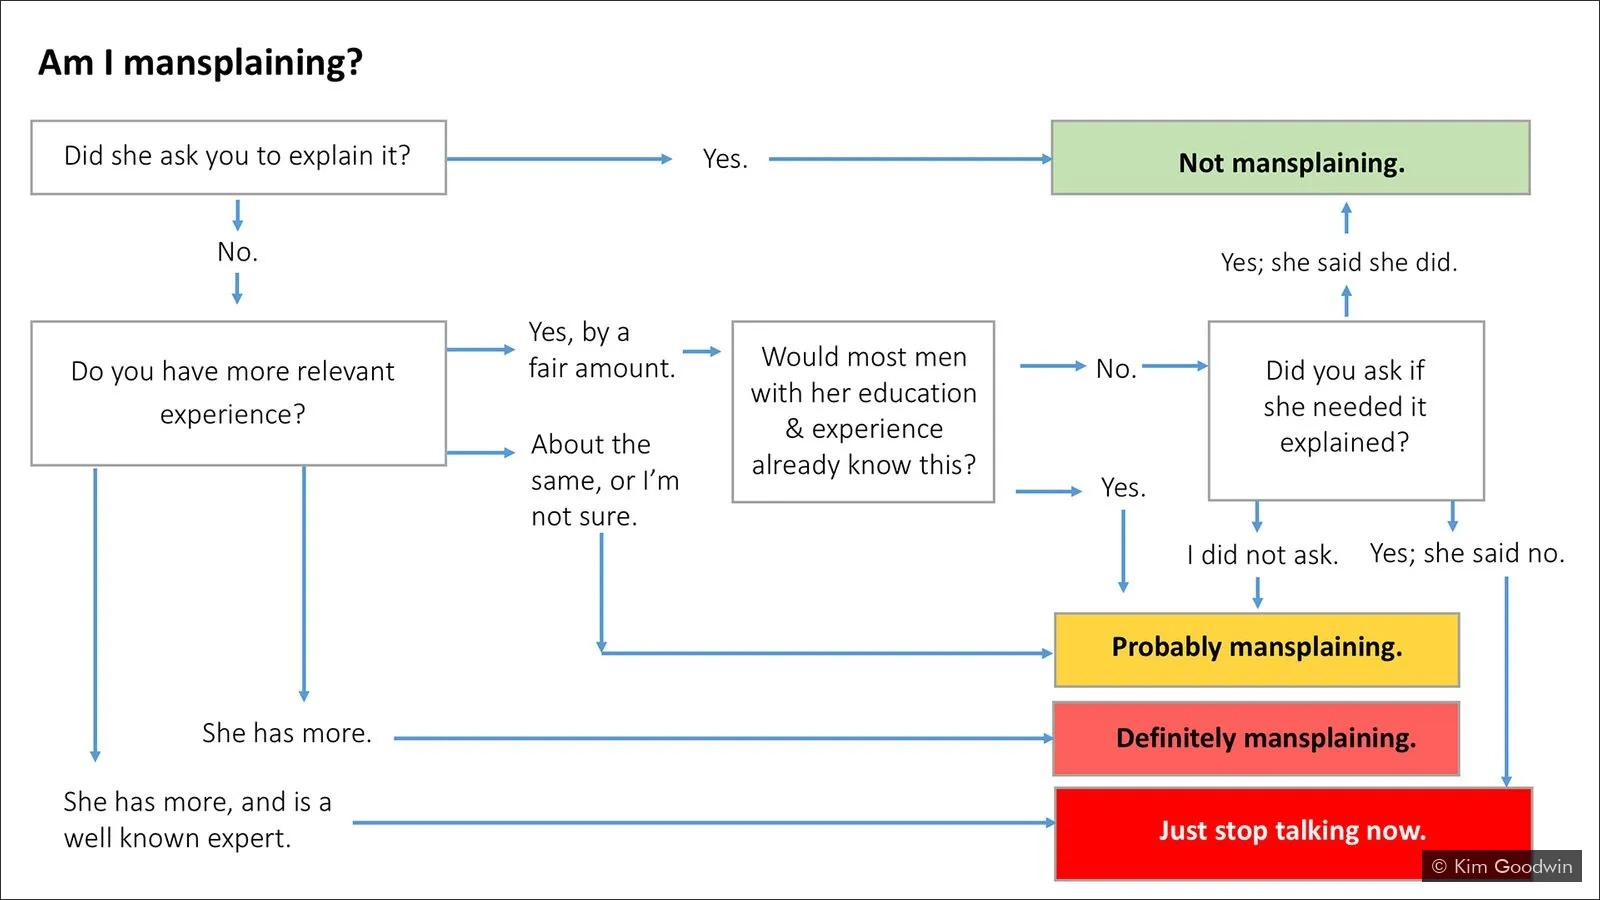 "This image provides a flow diagram  to help an individual answer the question ""Am I mansplaining?"" The flow chart consists of a series of questions in textboxes, and decision point arrows such as ""yes"" or ""no"". The first textbox is in the top left-hand concern and asks the question, ""Did she ask you to explain it?"" If the answer is yes, then it is not mansplaining. If the answer is no, the next question asks 'Do you have more relevant experience?. If yes the follow up question is 'did you ask if she needed it explained. If that answer is yes, then again, this is not mansplaining. If the answer is no to either of those two questions, the answer could be one of three:probably mansplaining; Definitely mansplaining; and Just stop talking now. Source: Kim Goodwin (2018)  Mansplaining, explained in one simple chart"